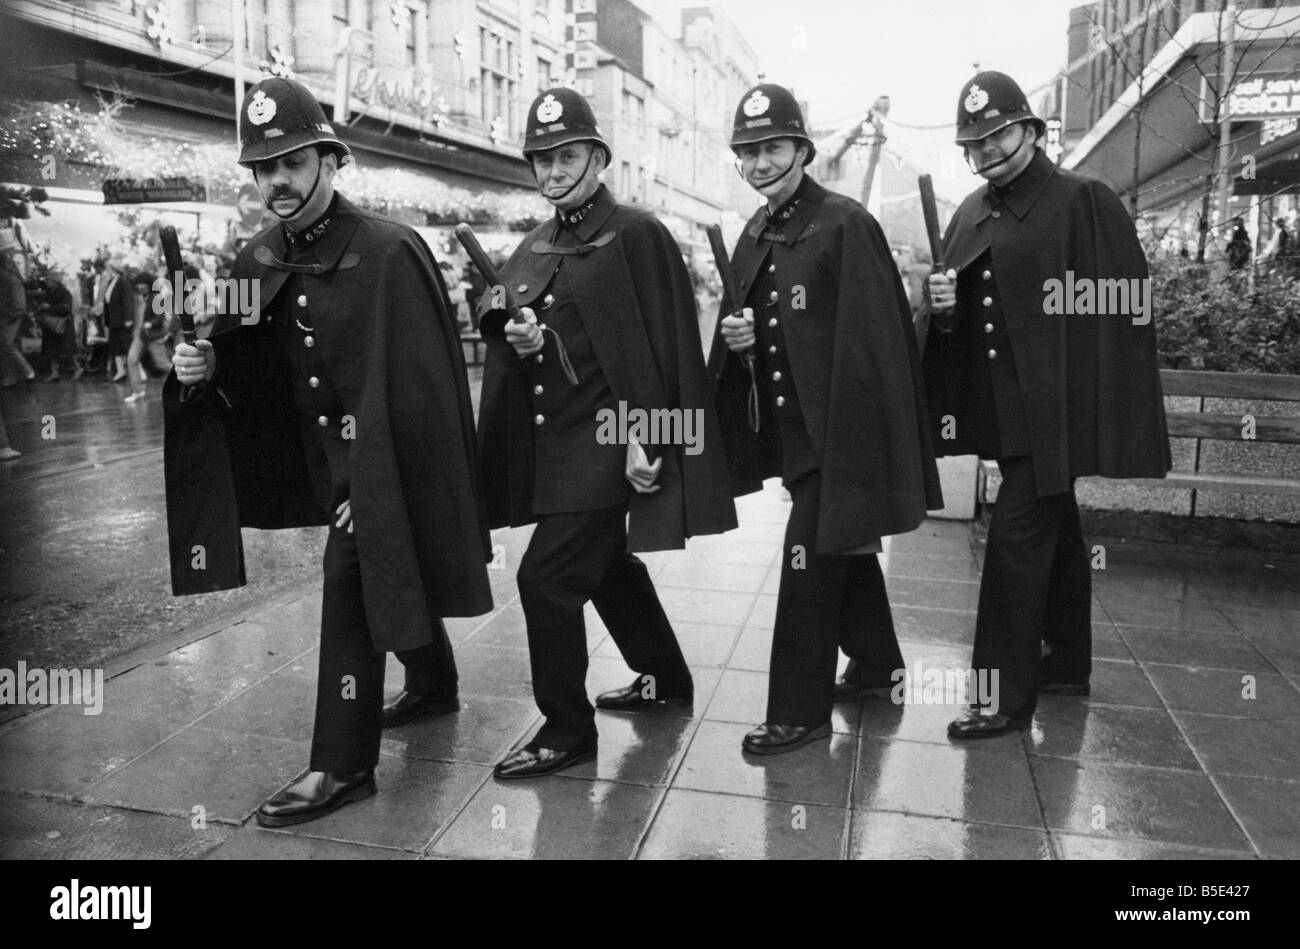 These Bobbies would have given robbers a run for their ...